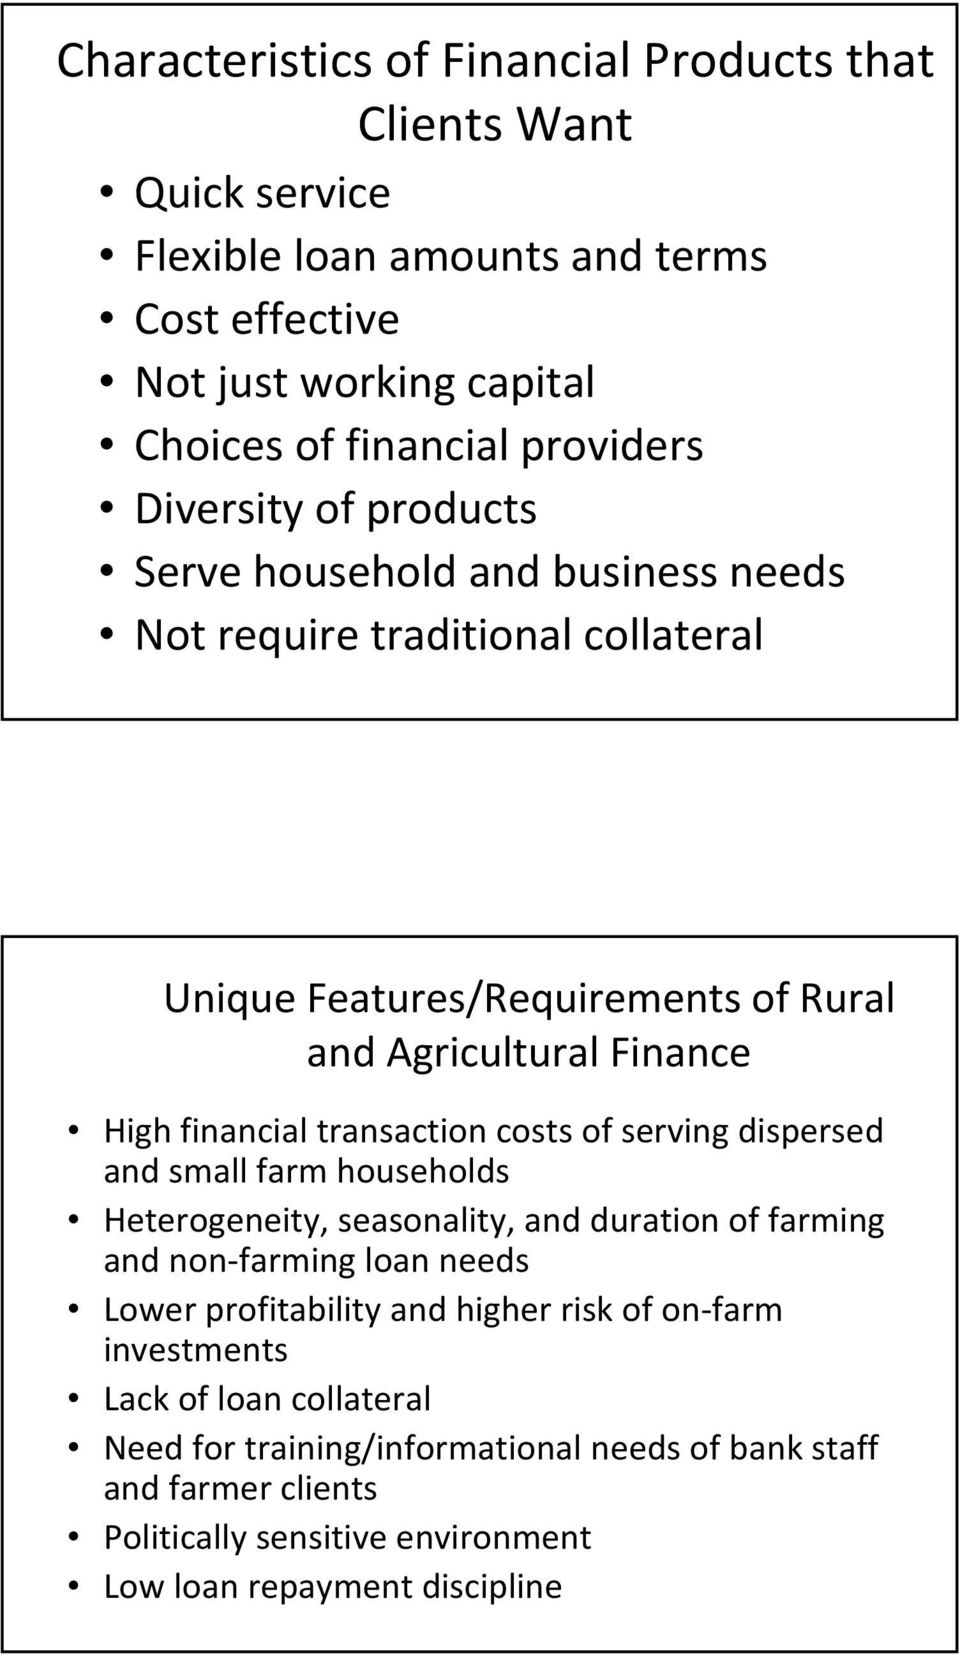 transaction costs of serving dispersed and small farm households Heterogeneity, seasonality, and duration of farming and non farming loan needs Lower profitability and higher